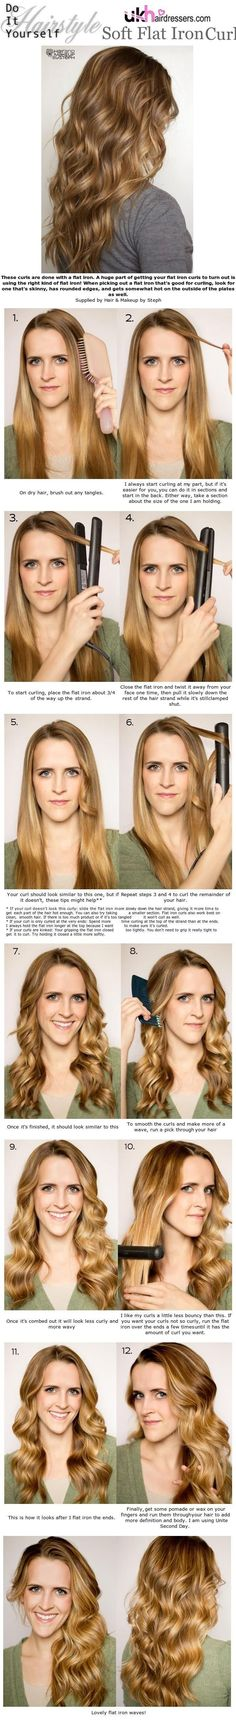 Flat Iron Curls 6 Ways to curl your hair